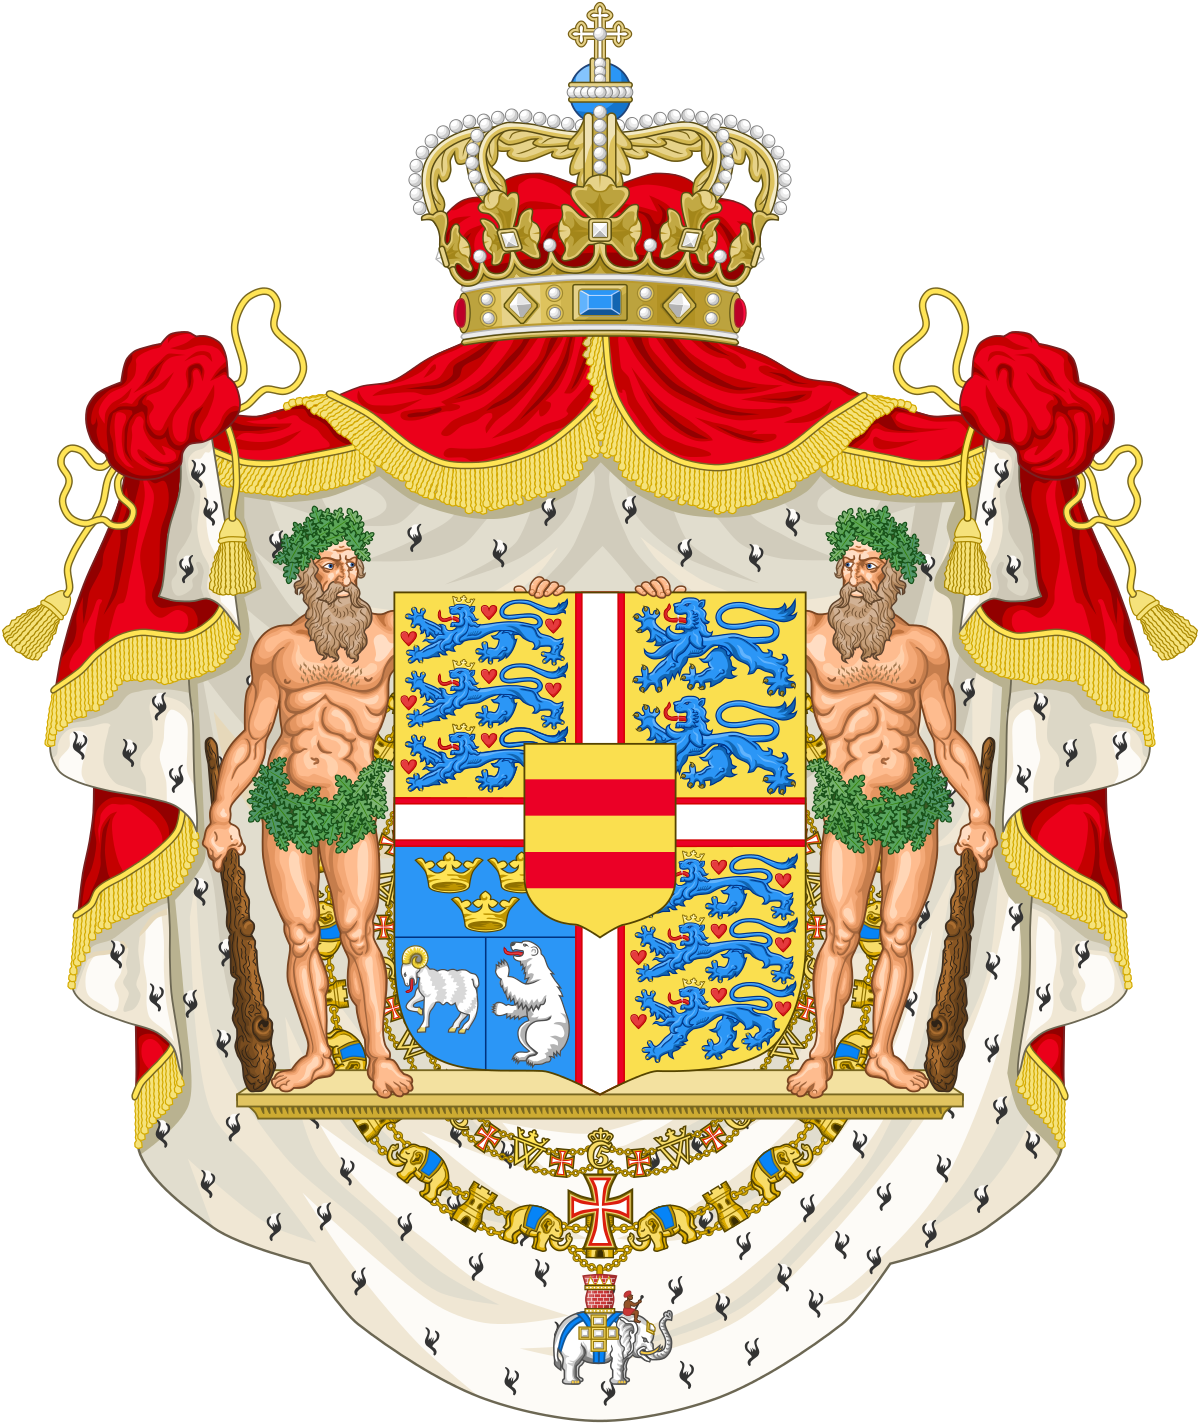 Monarchy of denmark wikipedia. Community clipart delegate